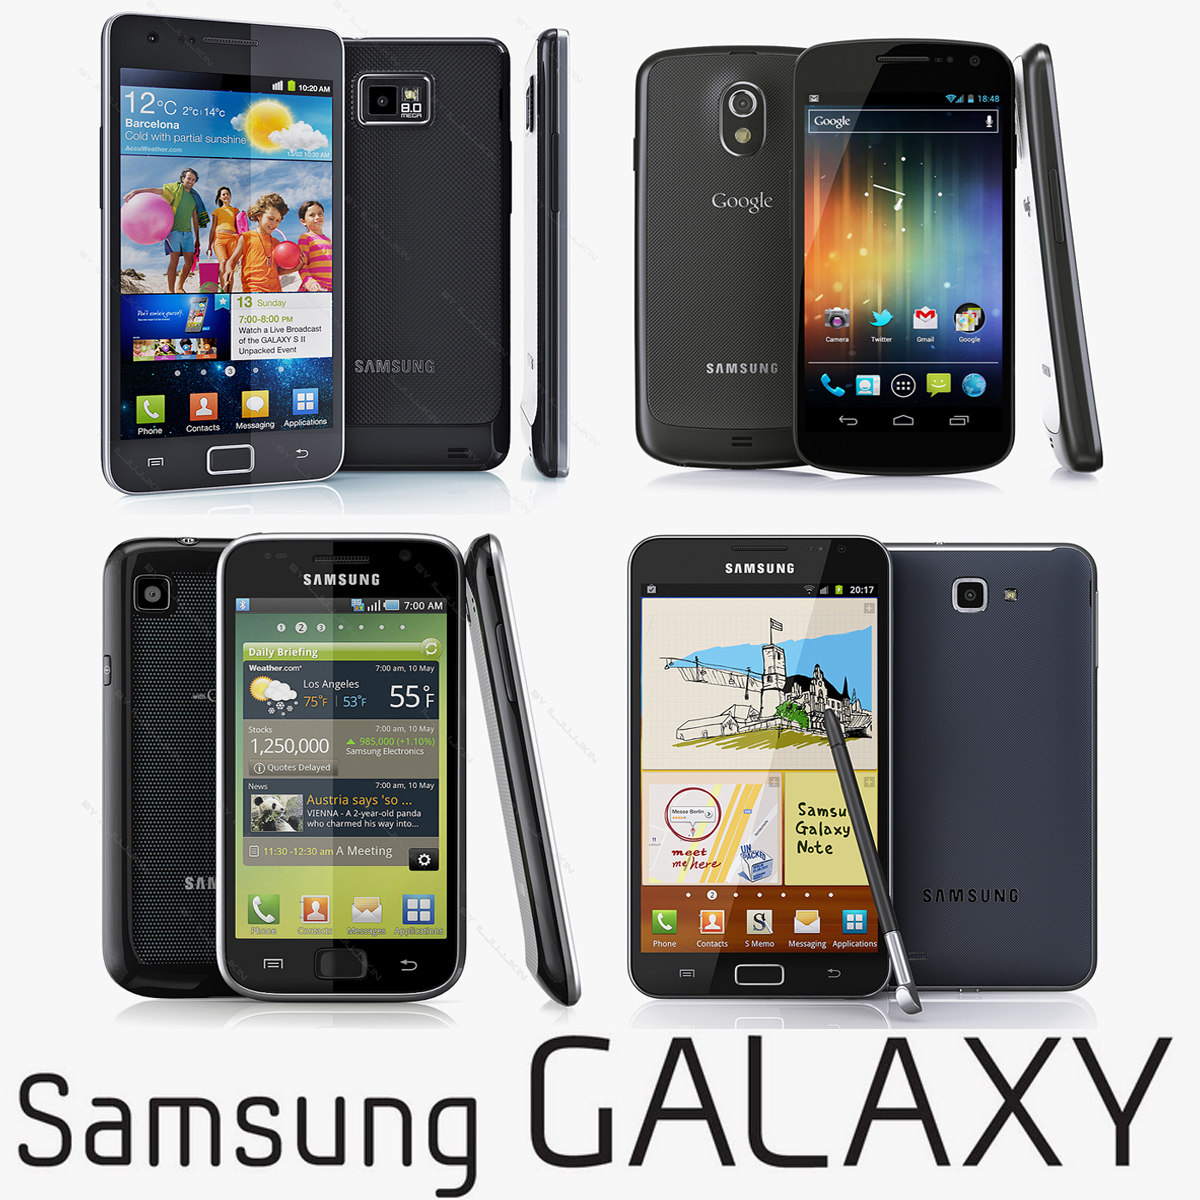 Samsung_galaxy_collection.jpg